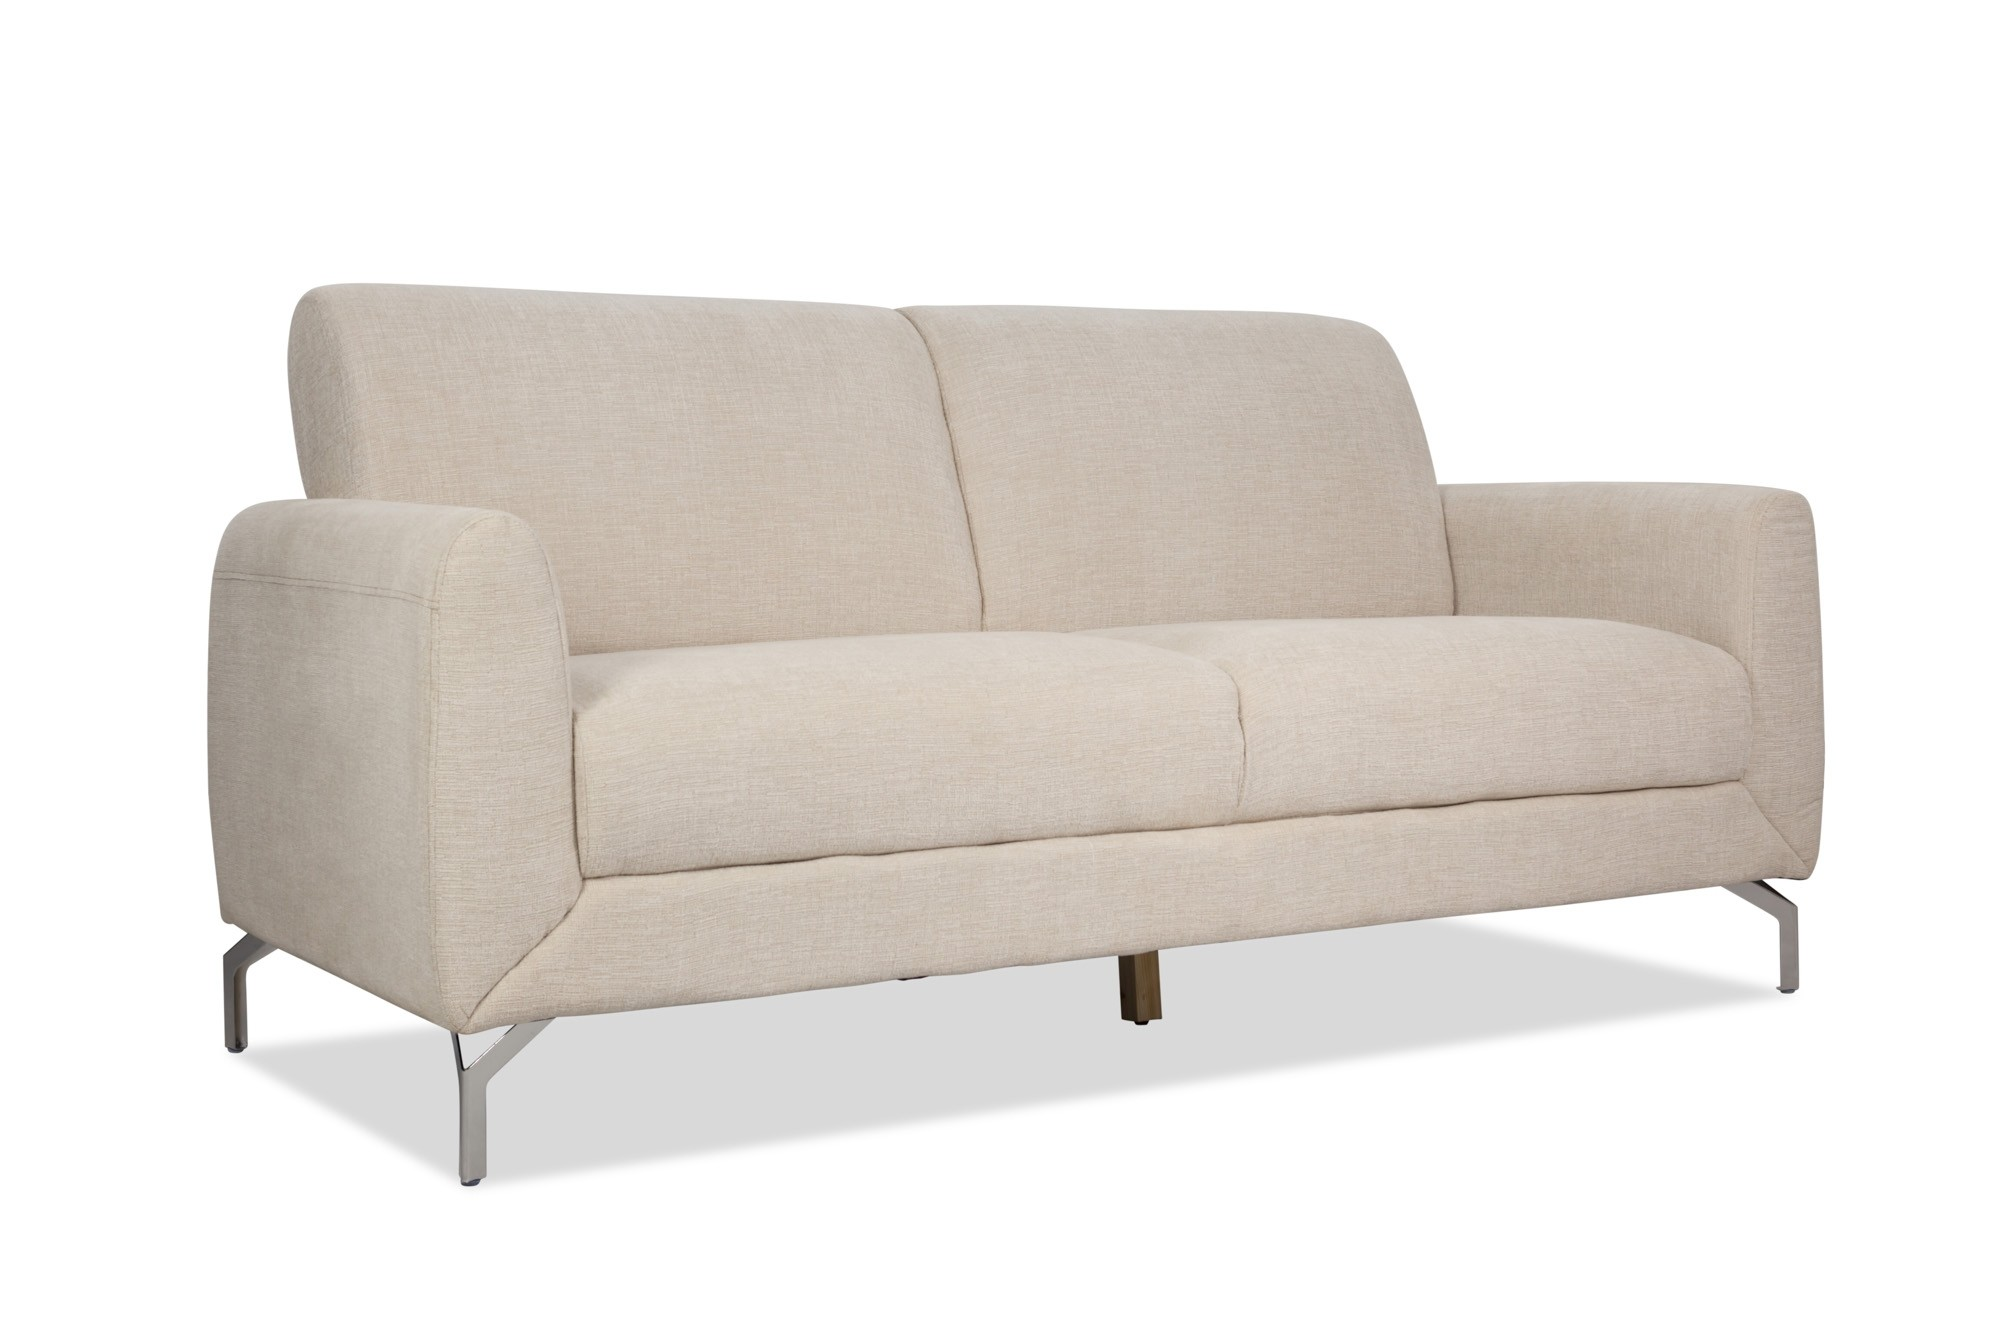 jacqueline sofa extra large covers for pets beige home the honoroak